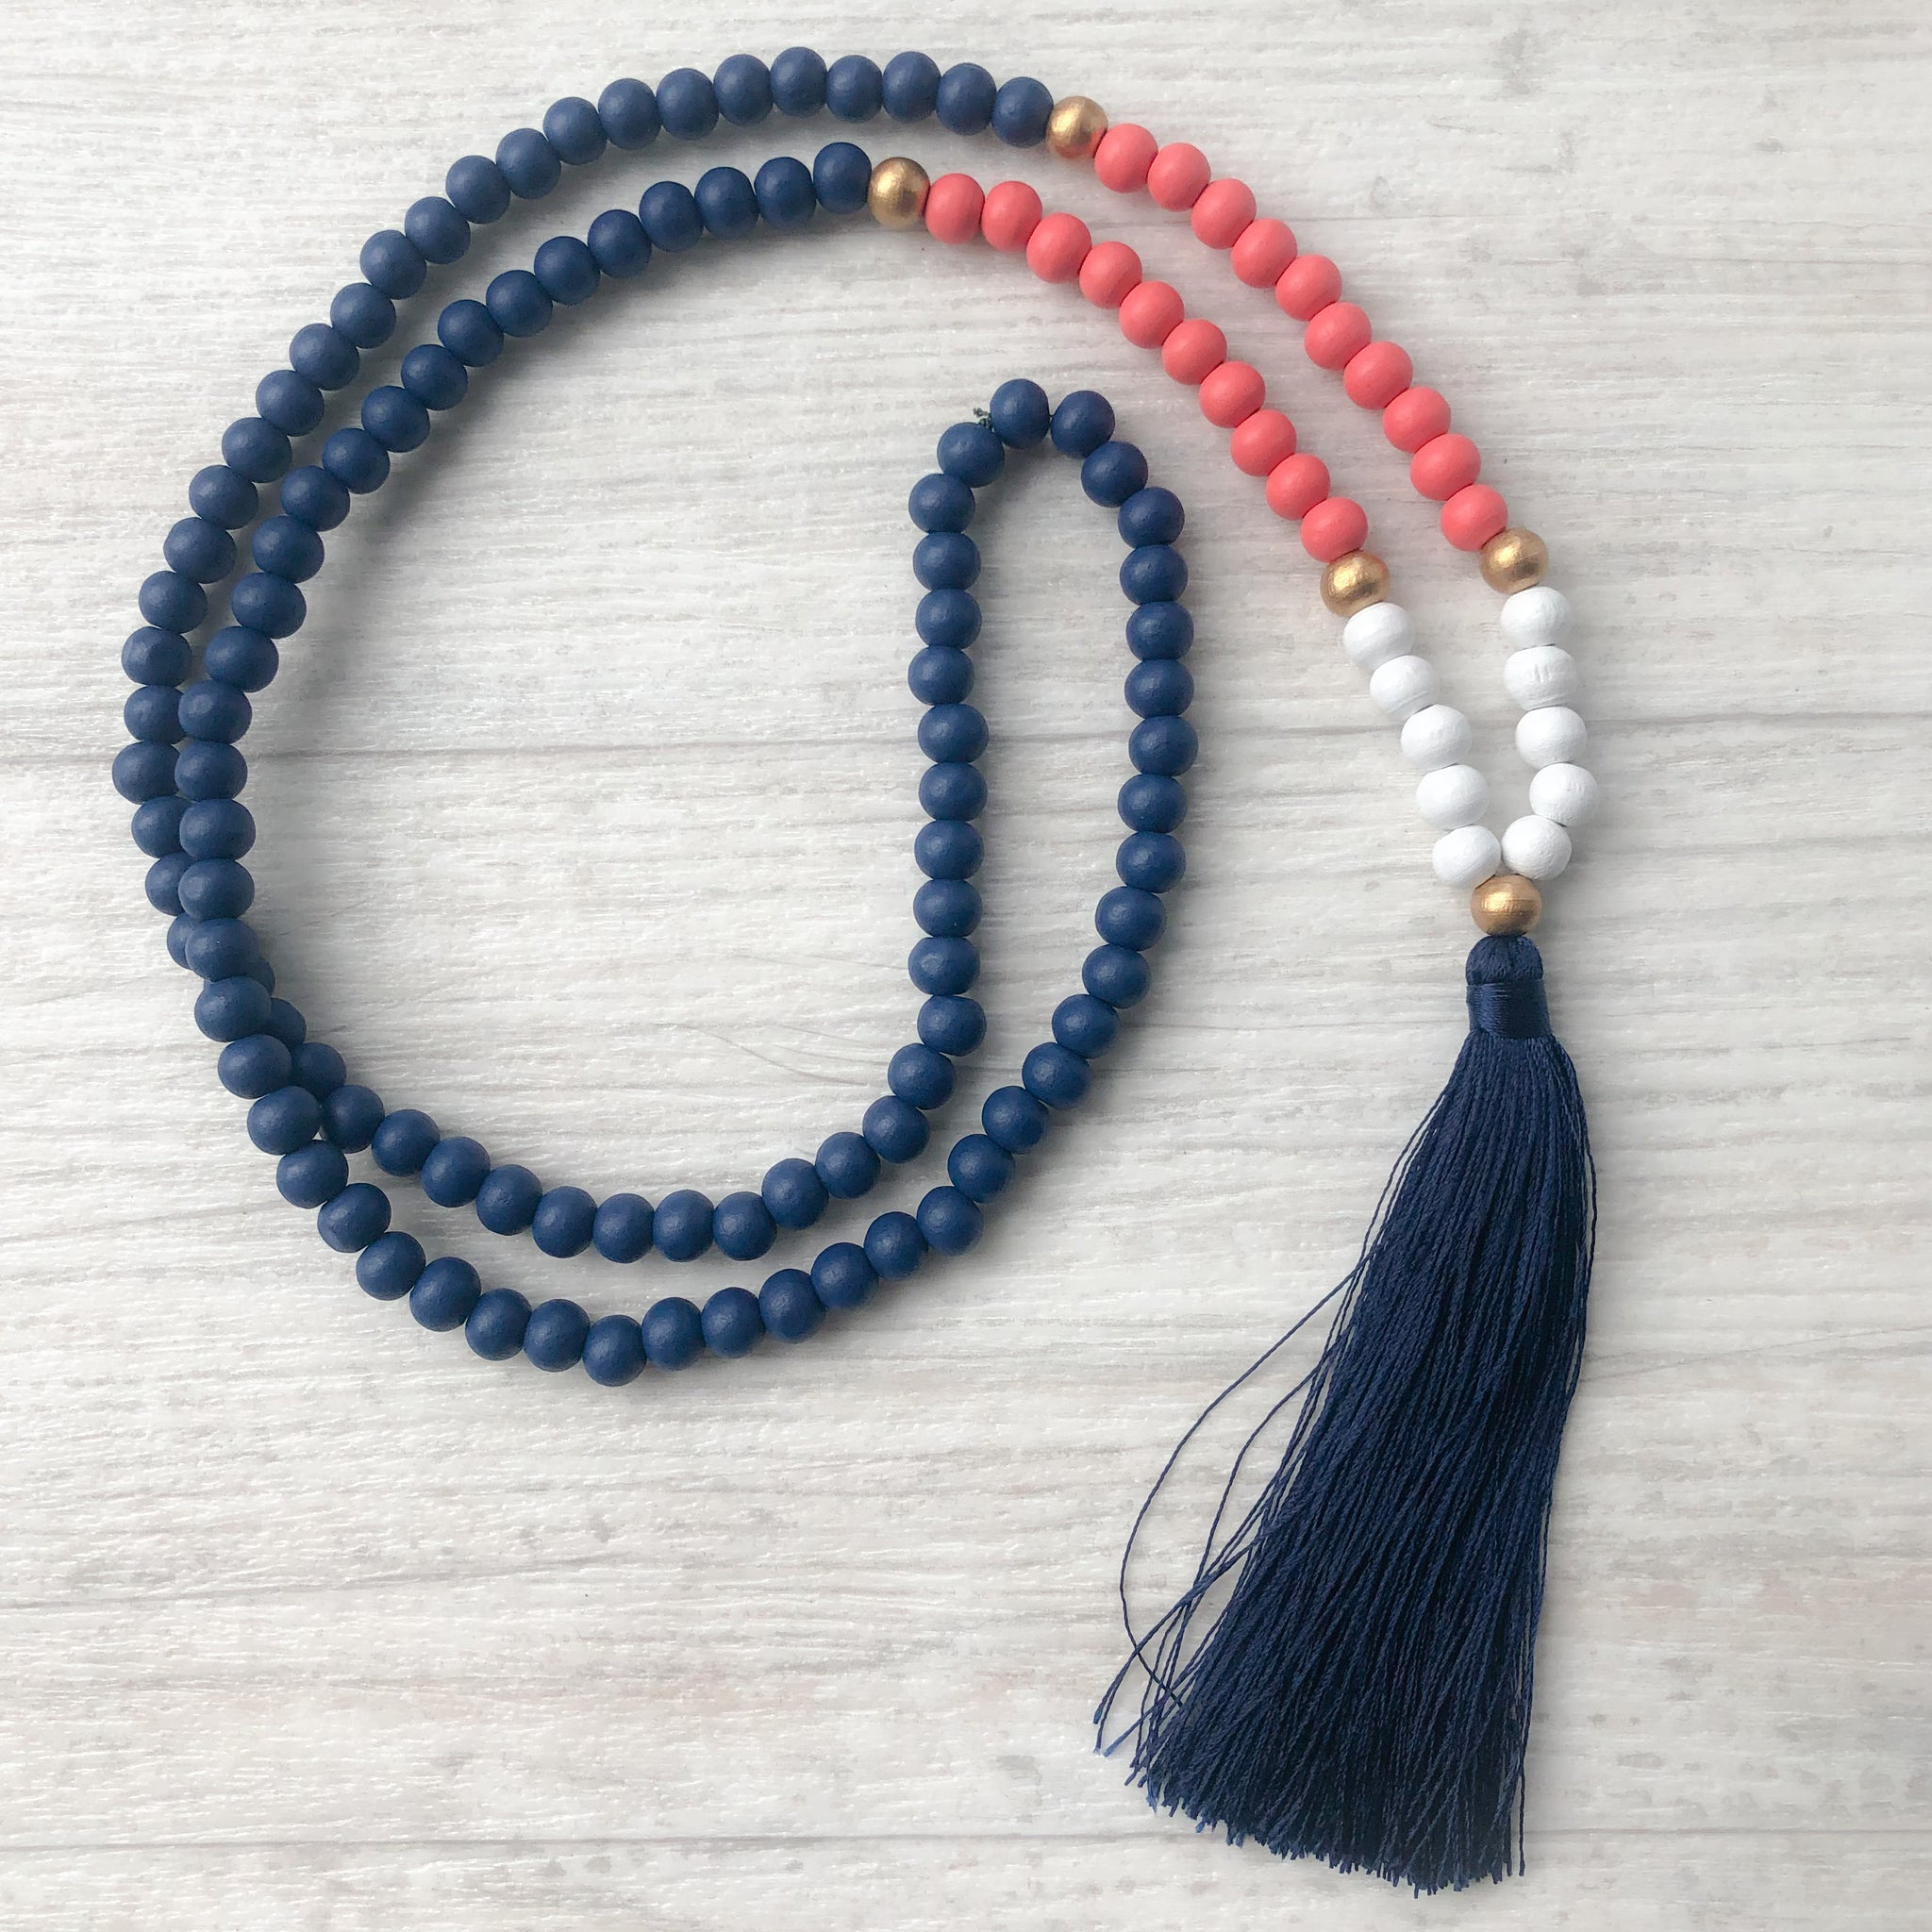 Tassel necklace - Puriri Bay